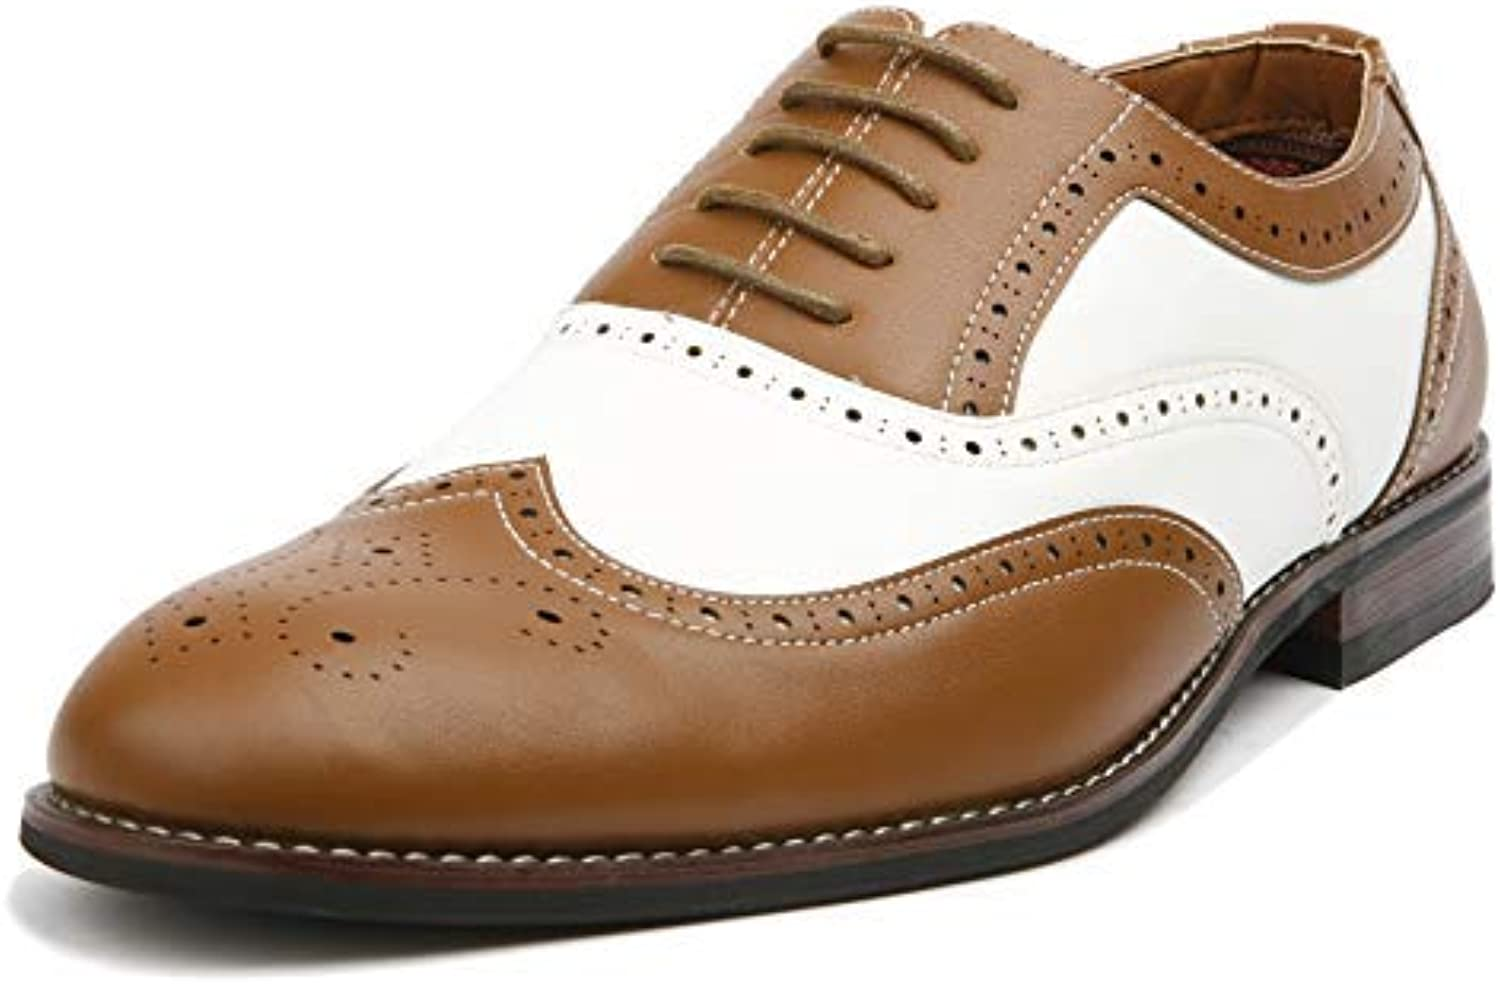 Ferro Aldo Arthur MFA139001D Mens Wingtip Two Tone Oxford Black and White Spectator Dress shoes - Brown, Size 9.5